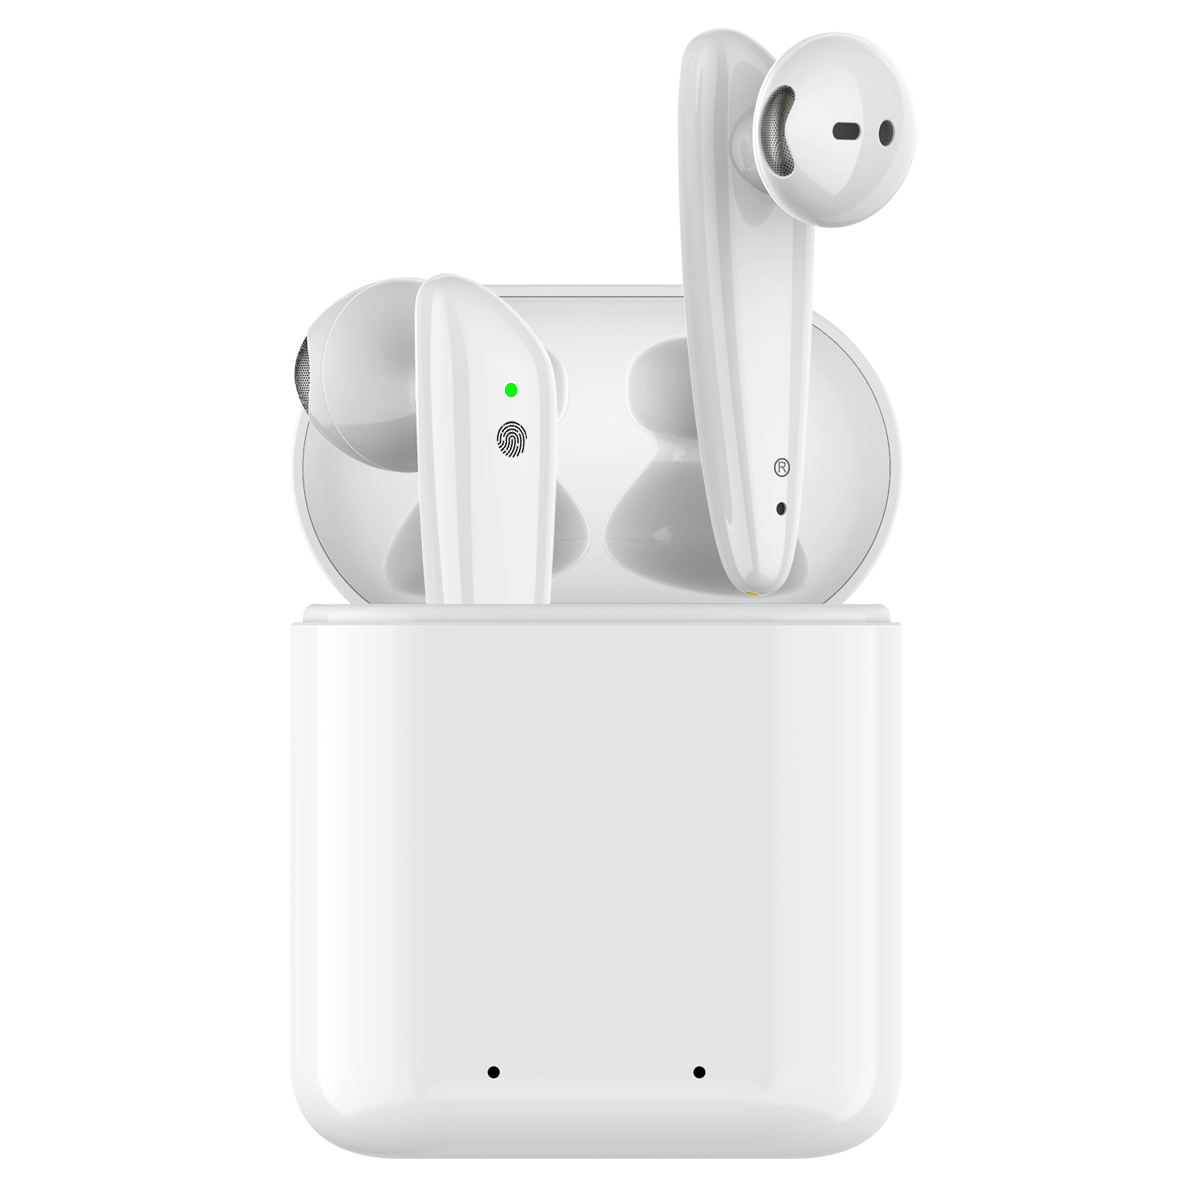 2019 New <font><b>i18</b></font> <font><b>tws</b></font> Wireless <font><b>Earphones</b></font> Bluetooth 5.0 Infrared Smart Sensor IPX7 Waterproof <font><b>Earphone</b></font> Noise Cancelling Binaural Calls image